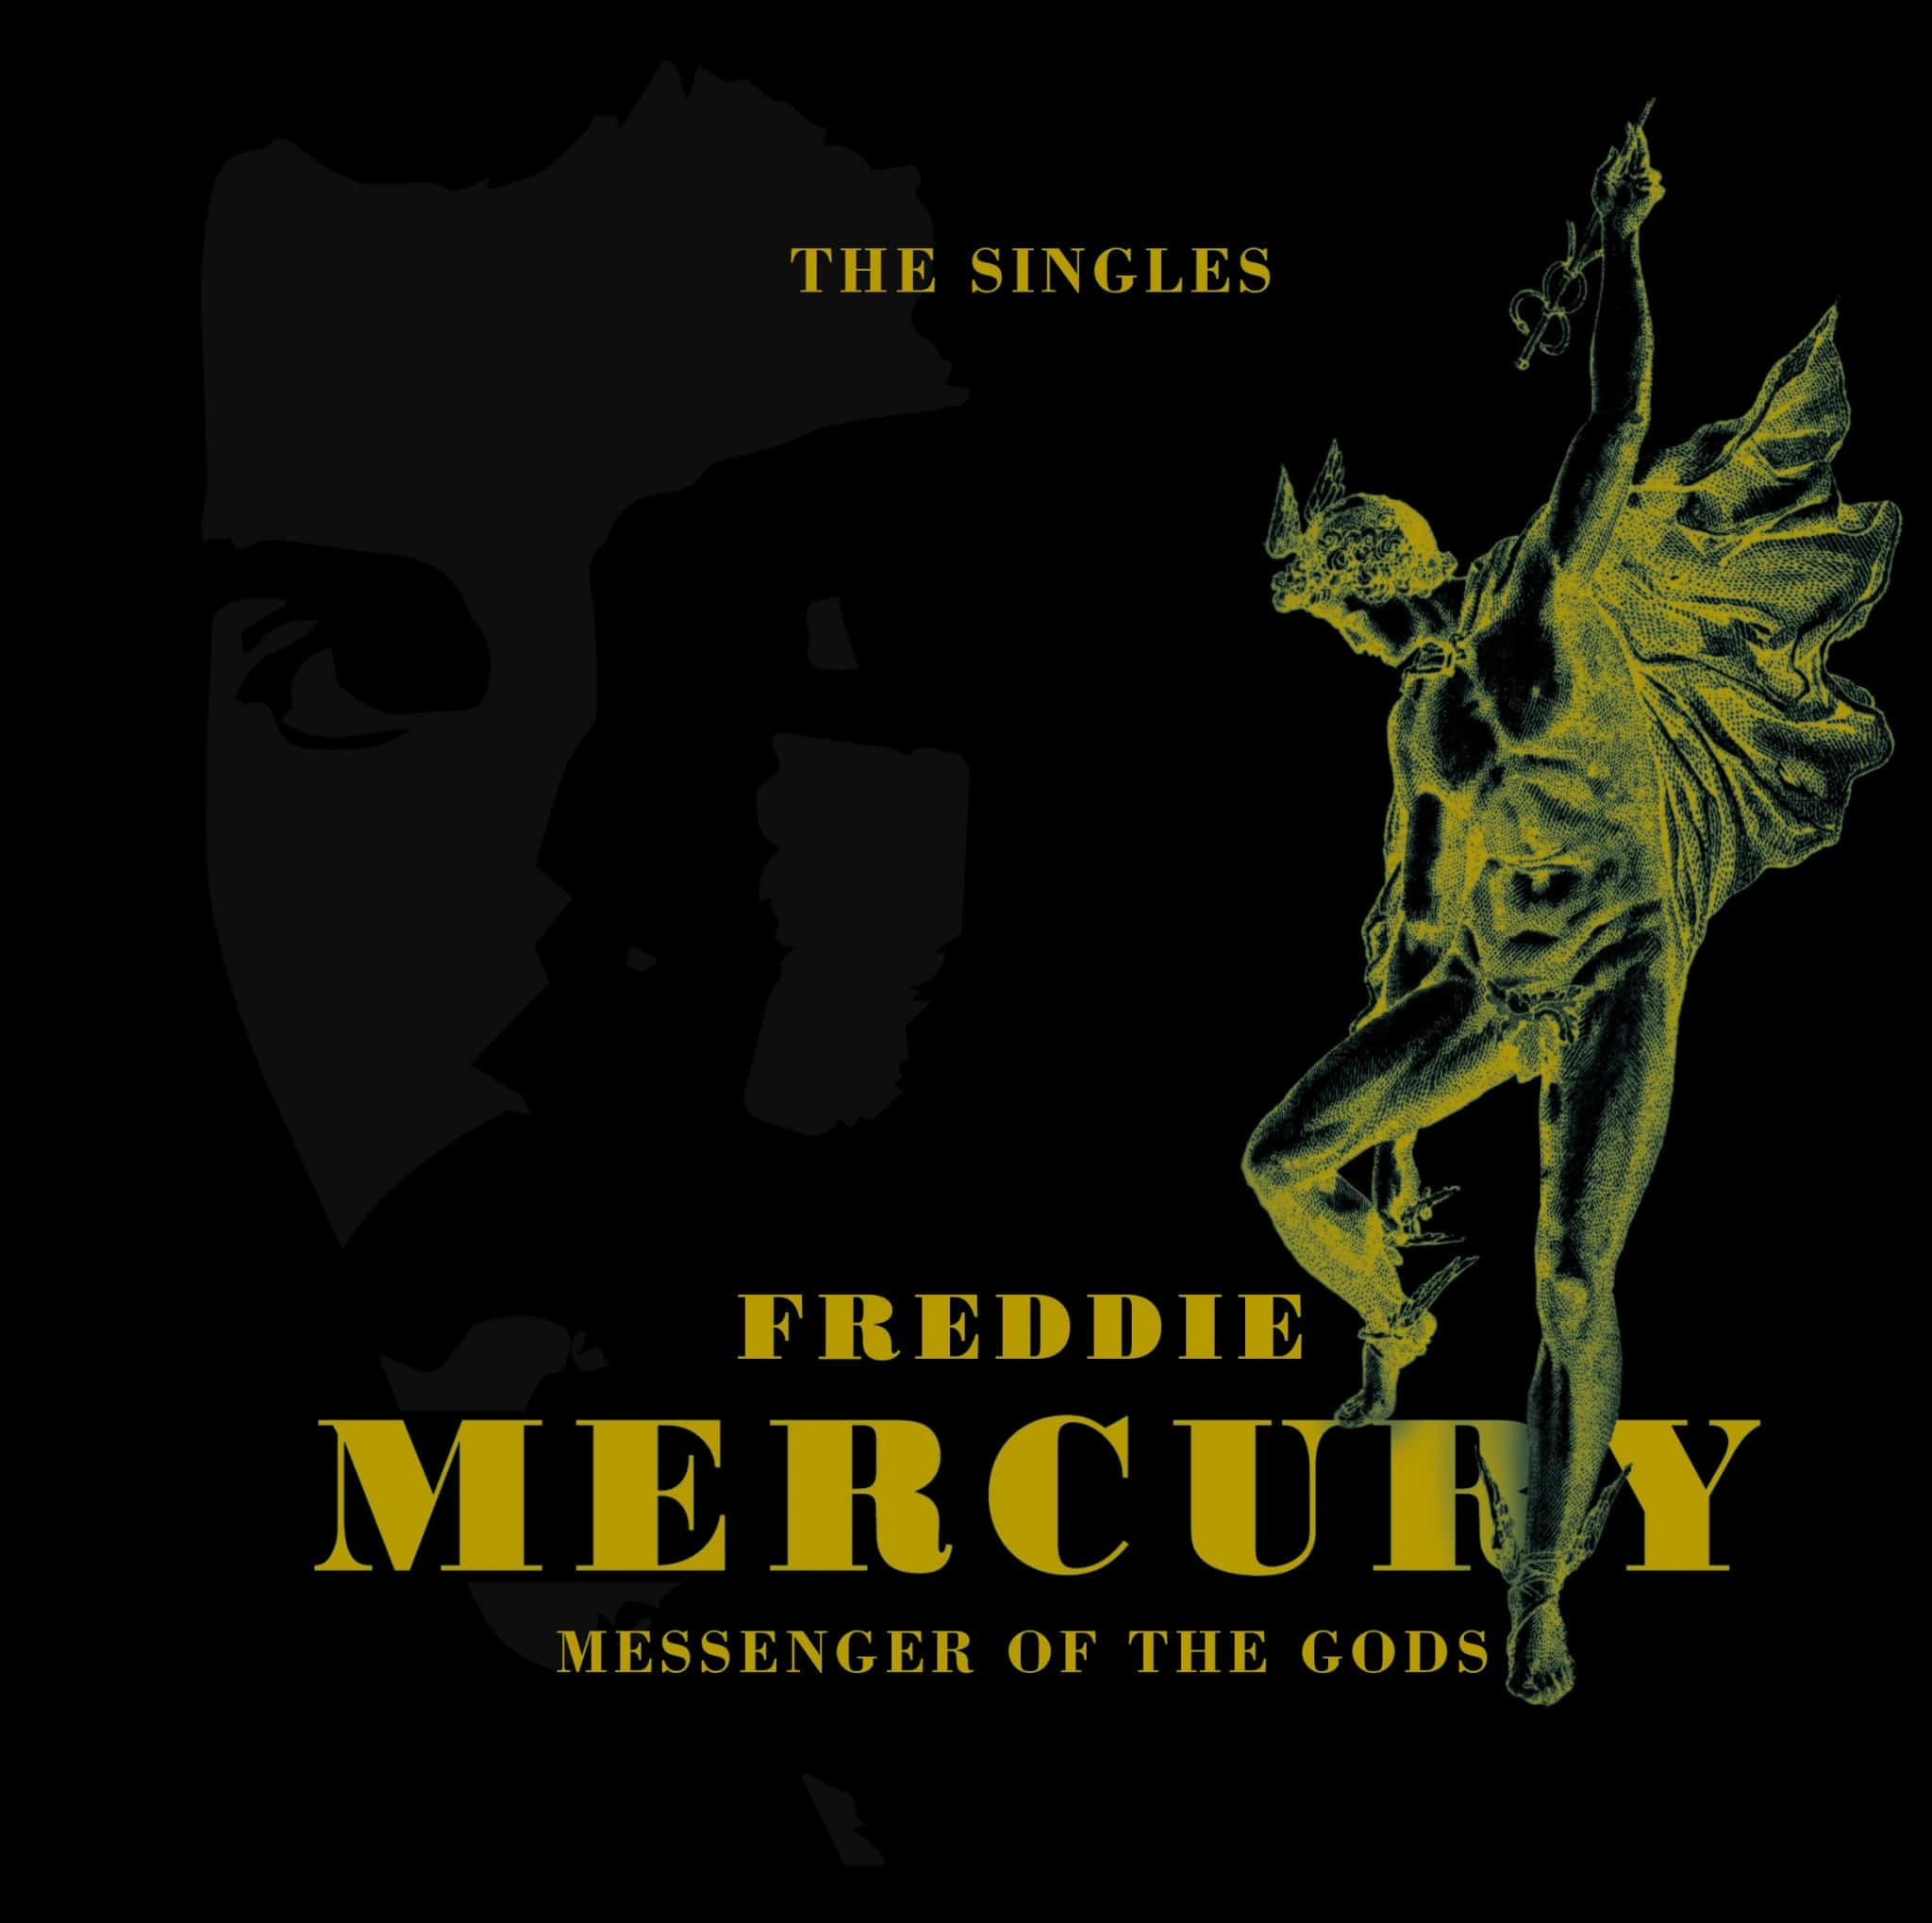 fm-news_folder_freddie-mercury-messenger-of-the-gods-the-singles-packshot